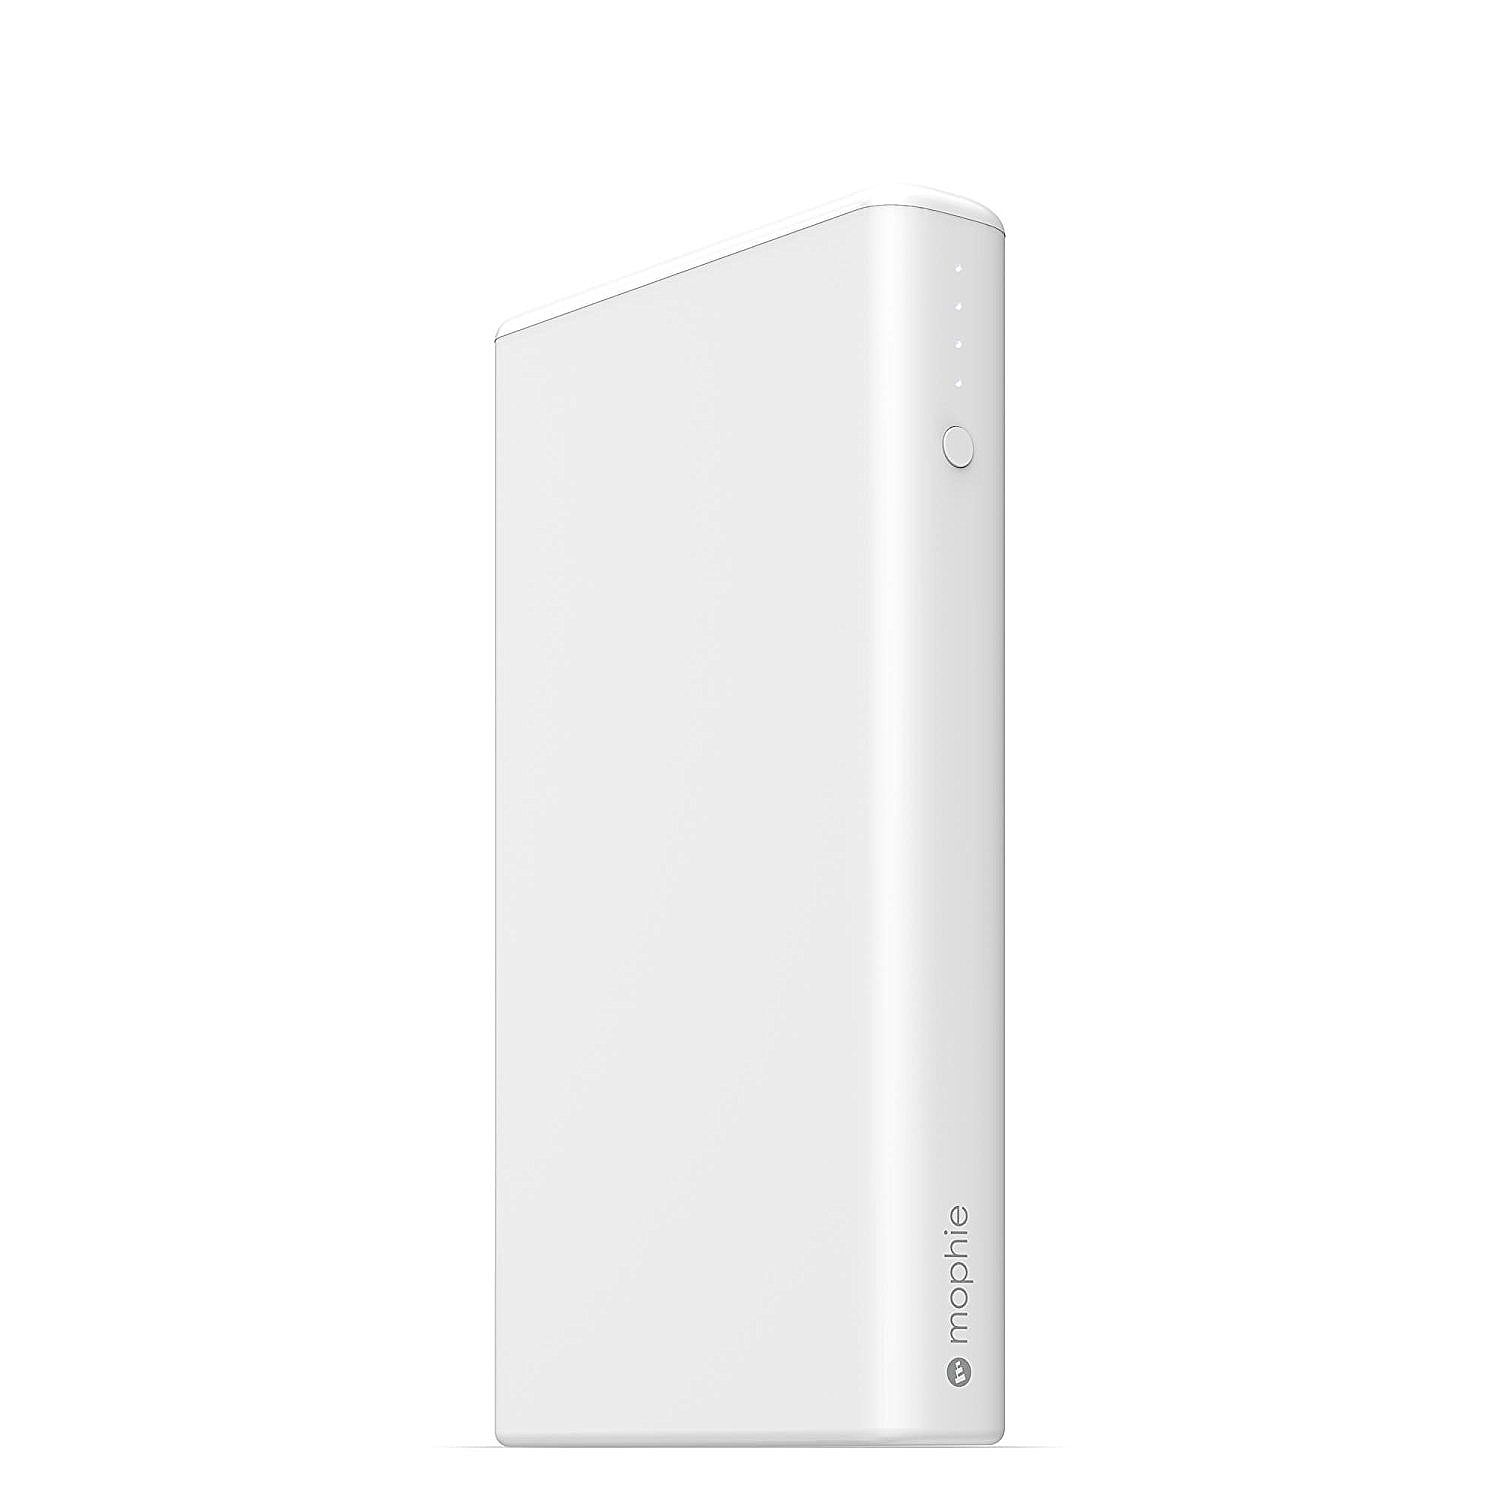 Mophie Power Boost XXL White Portable Charger 20800mAh 2x USB @ 4.2A: Φορητή Μπαταρία για Smartphones, Κινητά, Tablets κ.λπ.